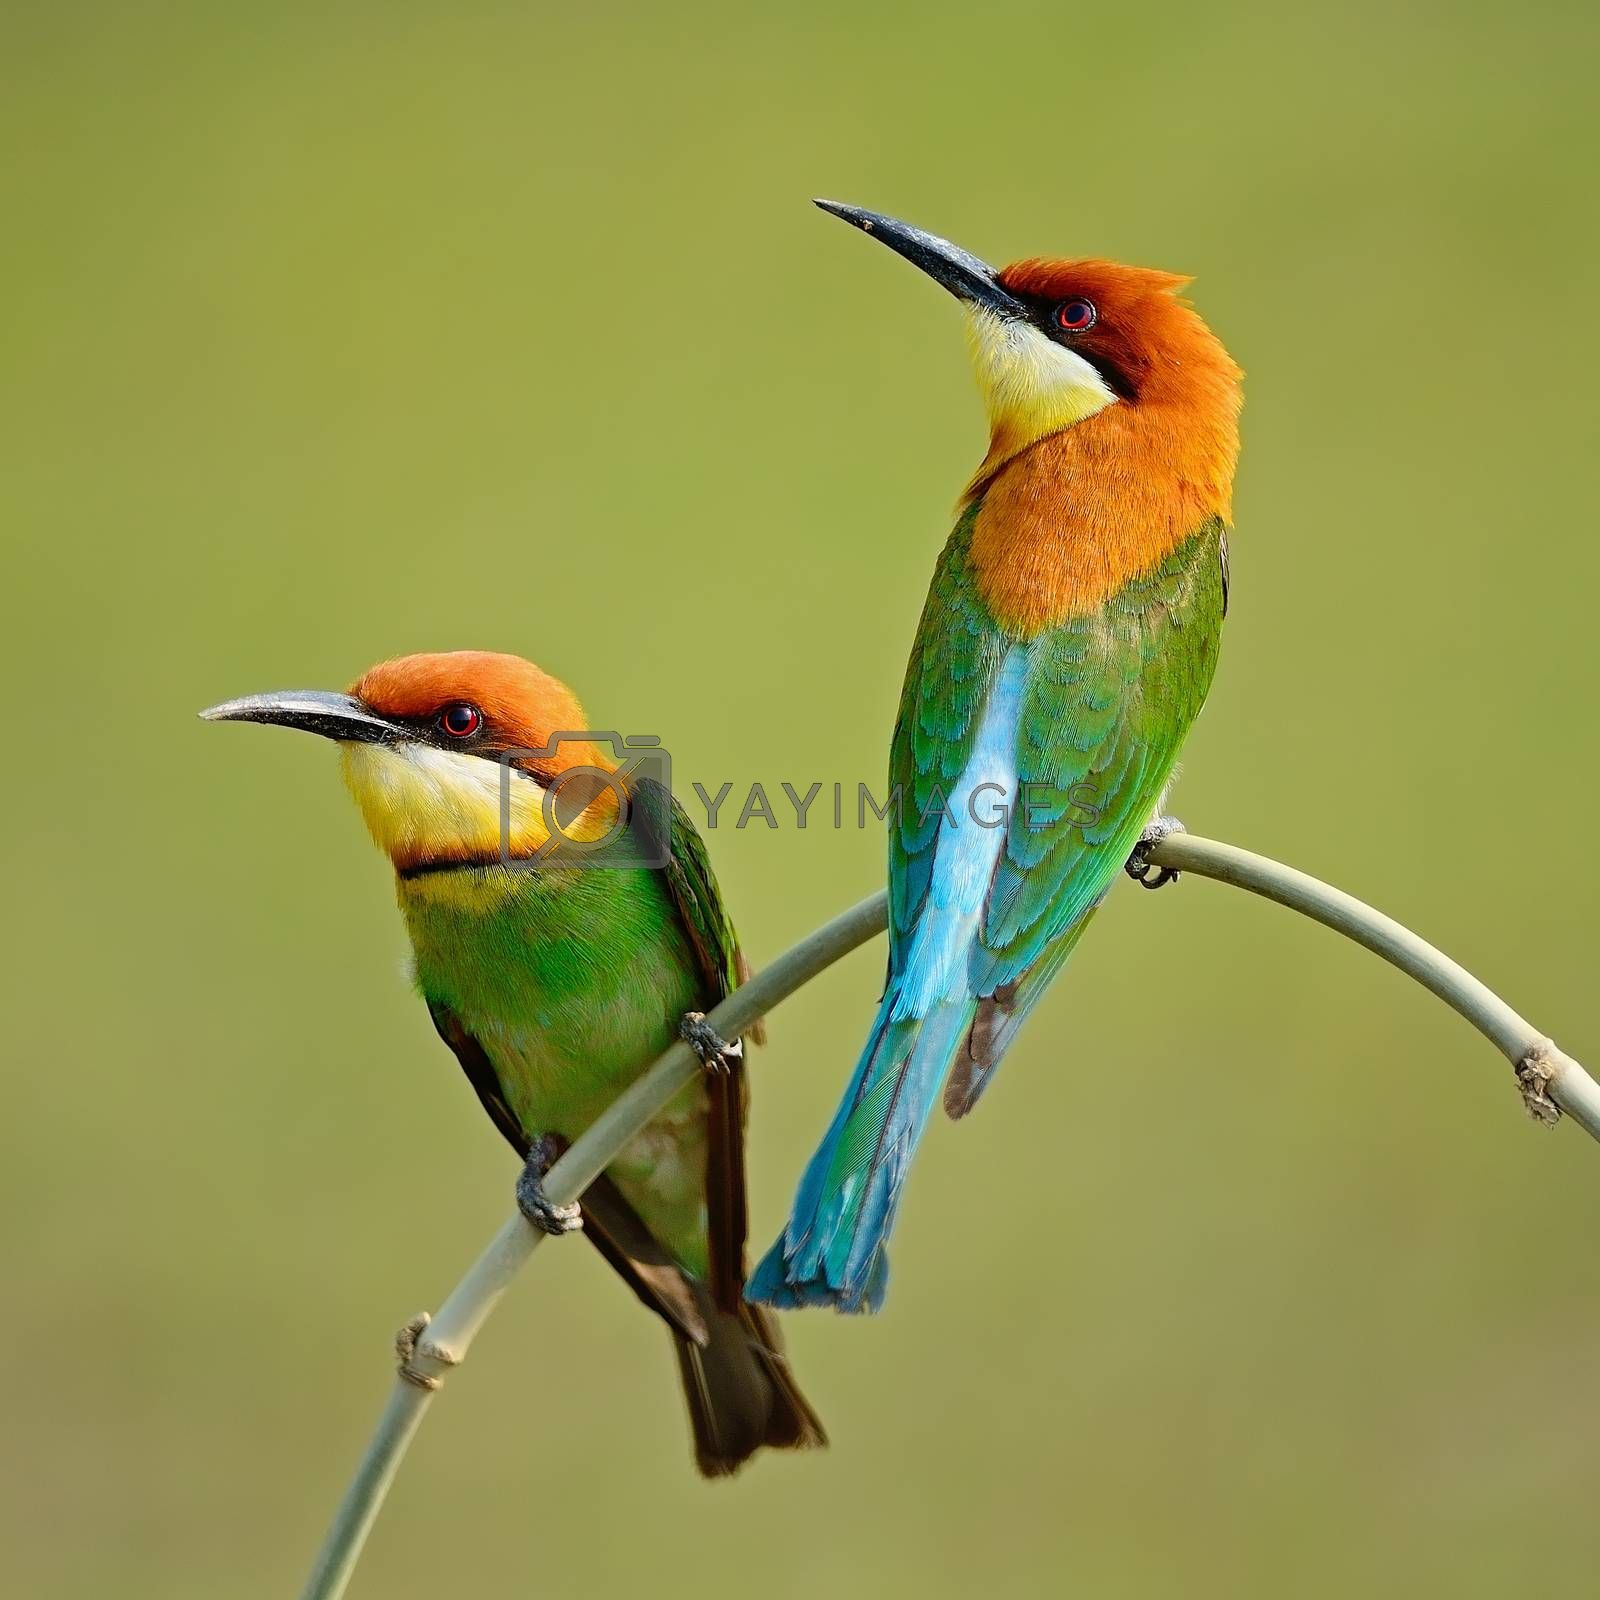 Royalty free image of Chestnut-headed Bee-eater by panuruangjan